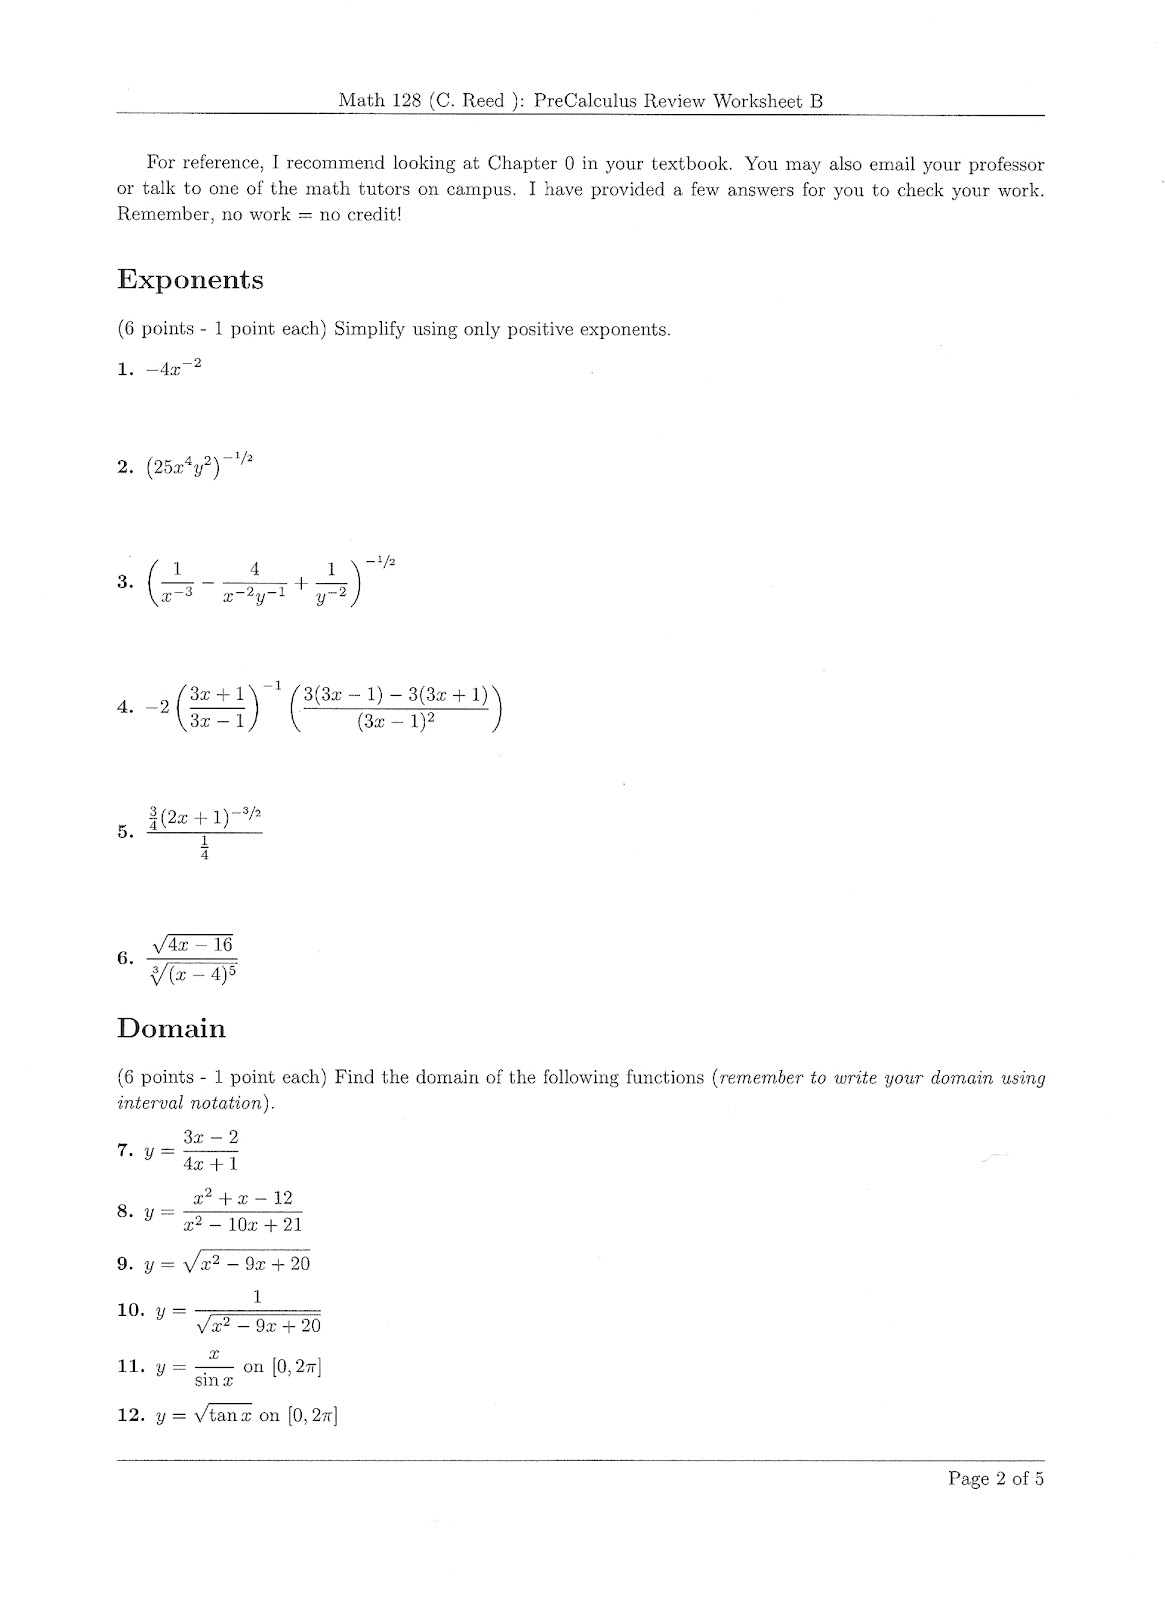 Printables Pre-calculus Worksheets first day plan calculus i after the introductory lesson limits usually handed students a precalculus and algebra review worksheet heres one page of my worksheet